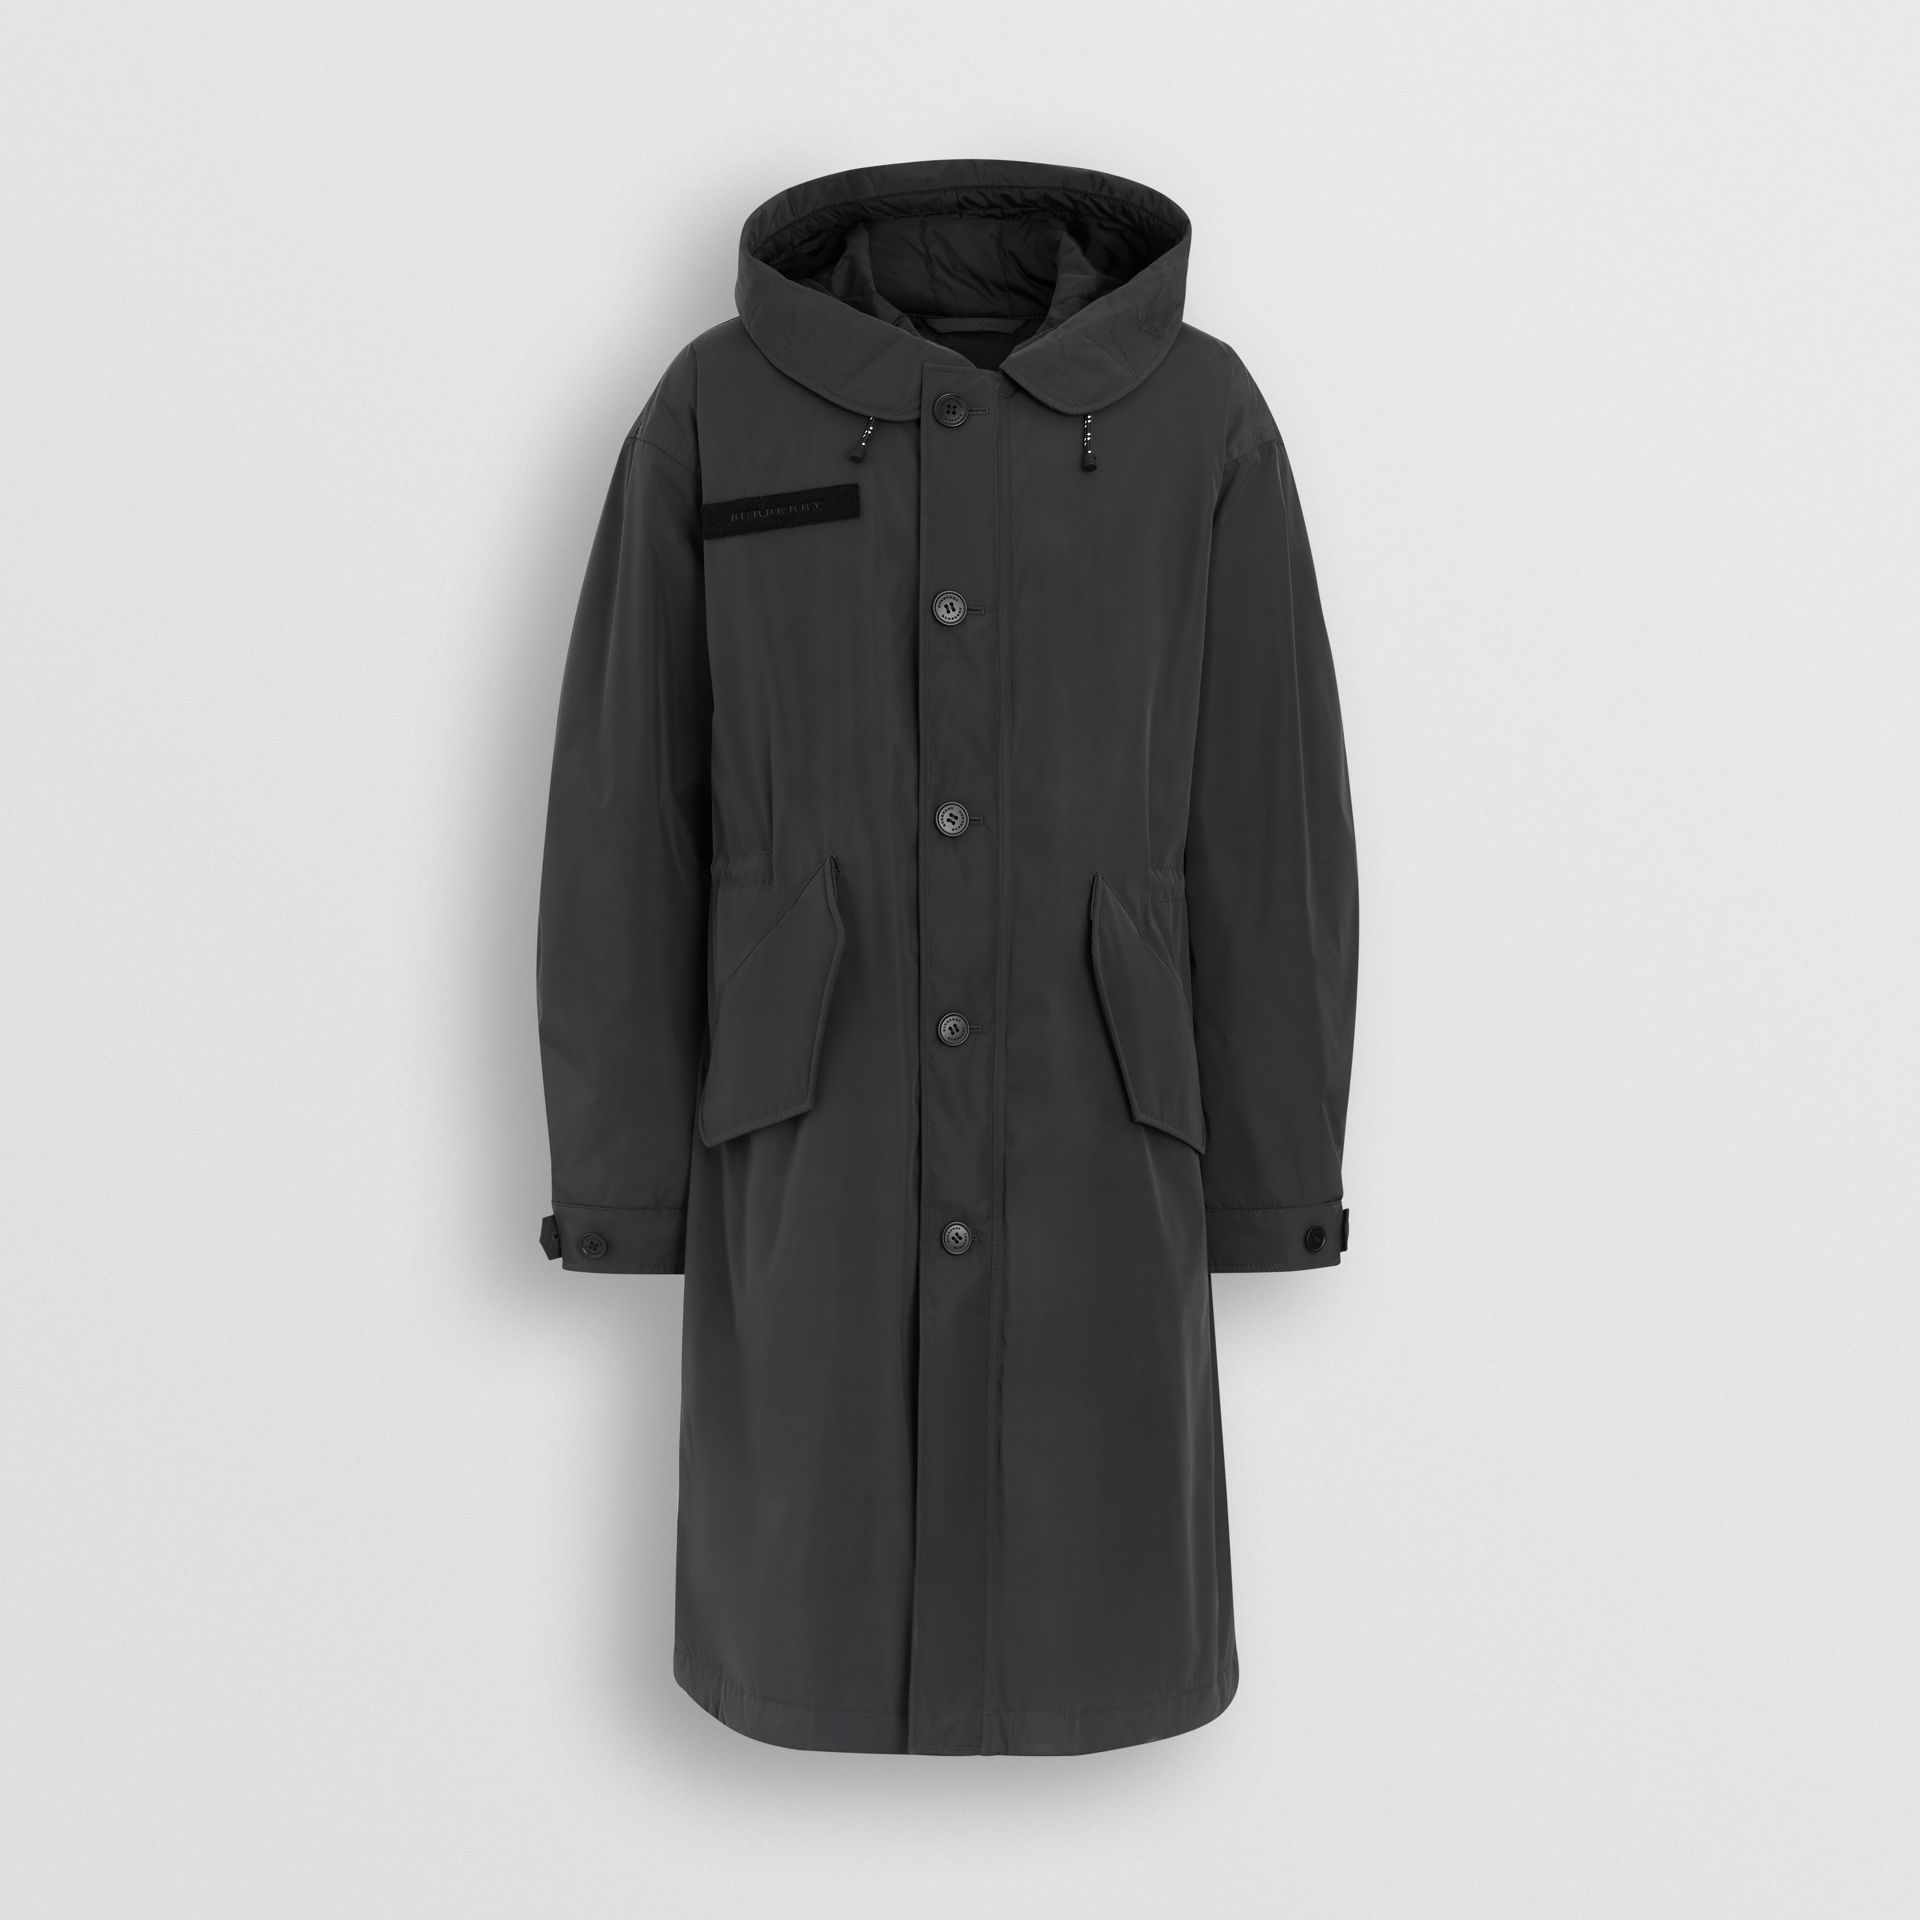 Quilt-lined Technical Nylon Parka in Dark Charcoal - Men | Burberry - gallery image 3